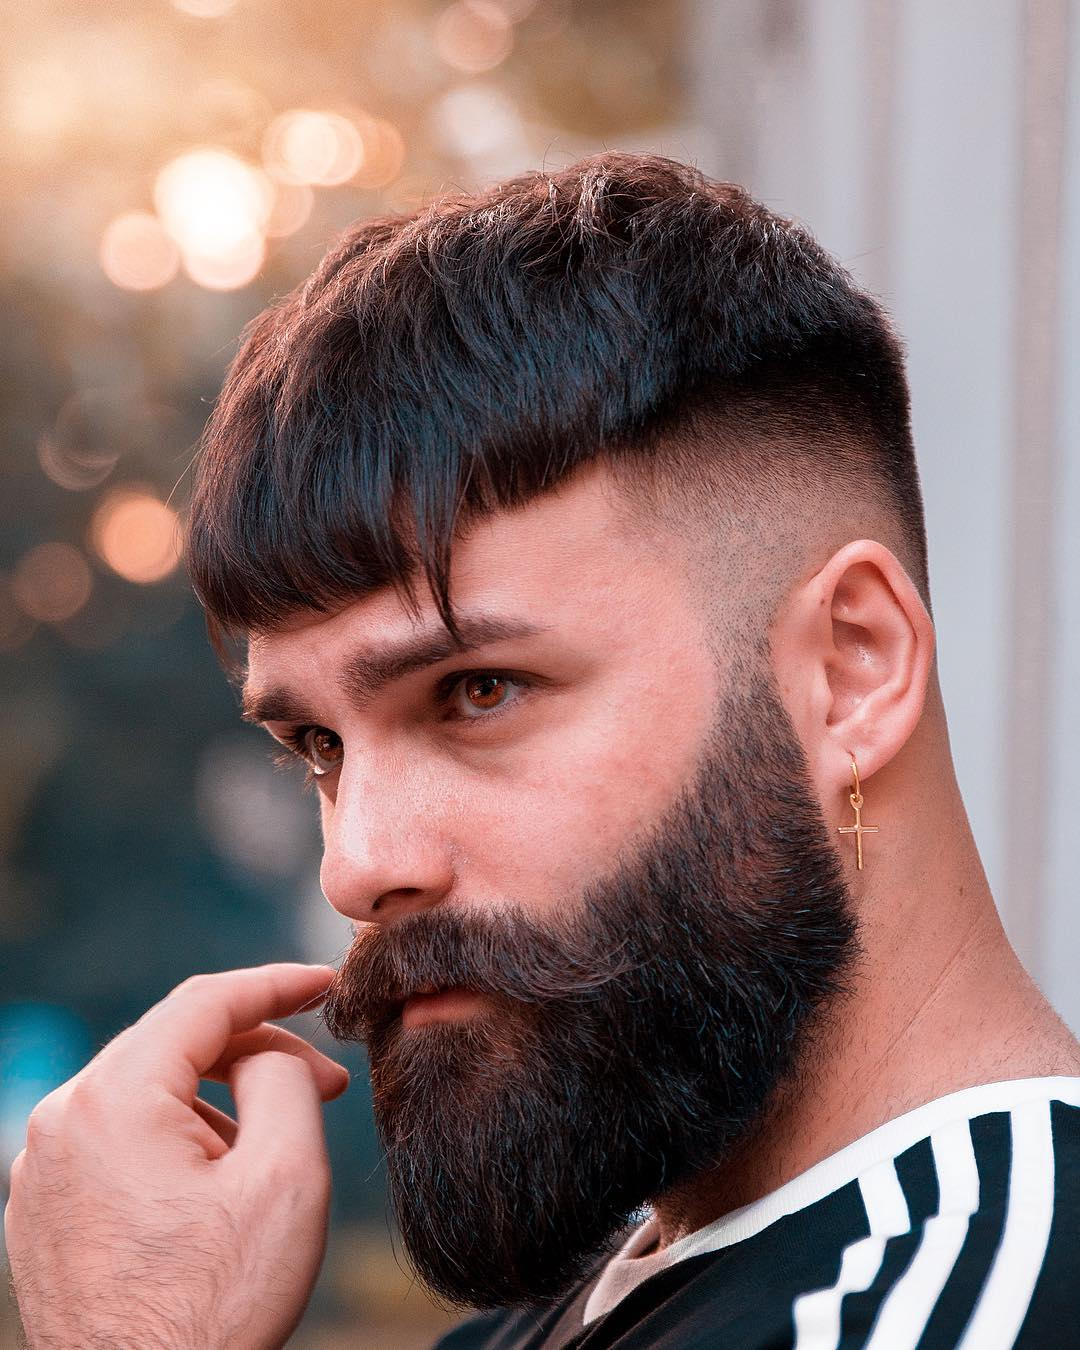 Crop Haircut And Full Beard